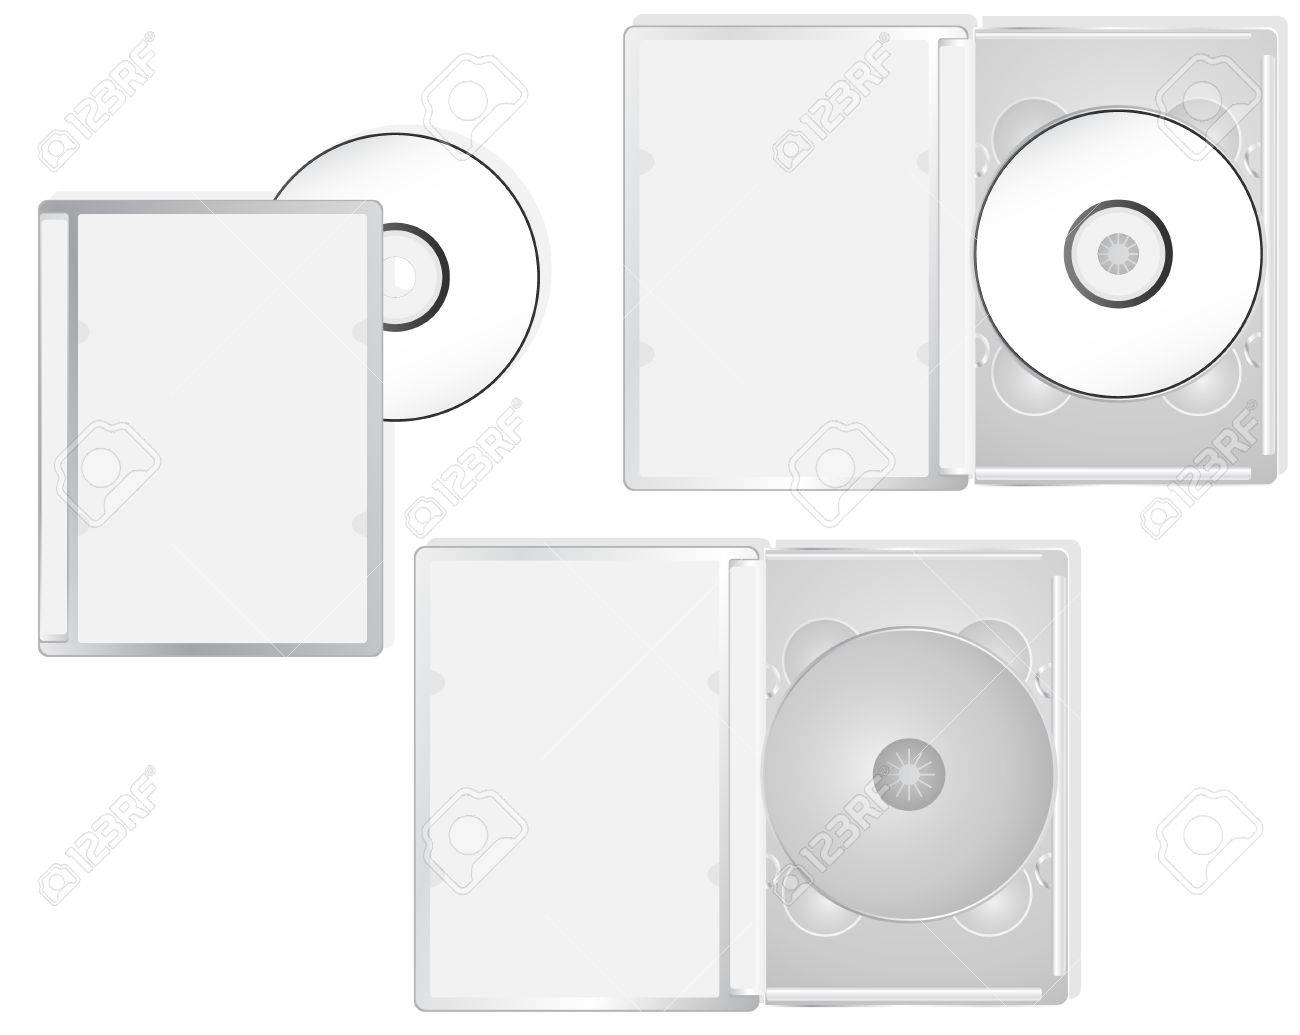 DVD and its boxes into different positions. Ideal for packaging purposes. Linear and radial gradients Stock Vector - 5801144